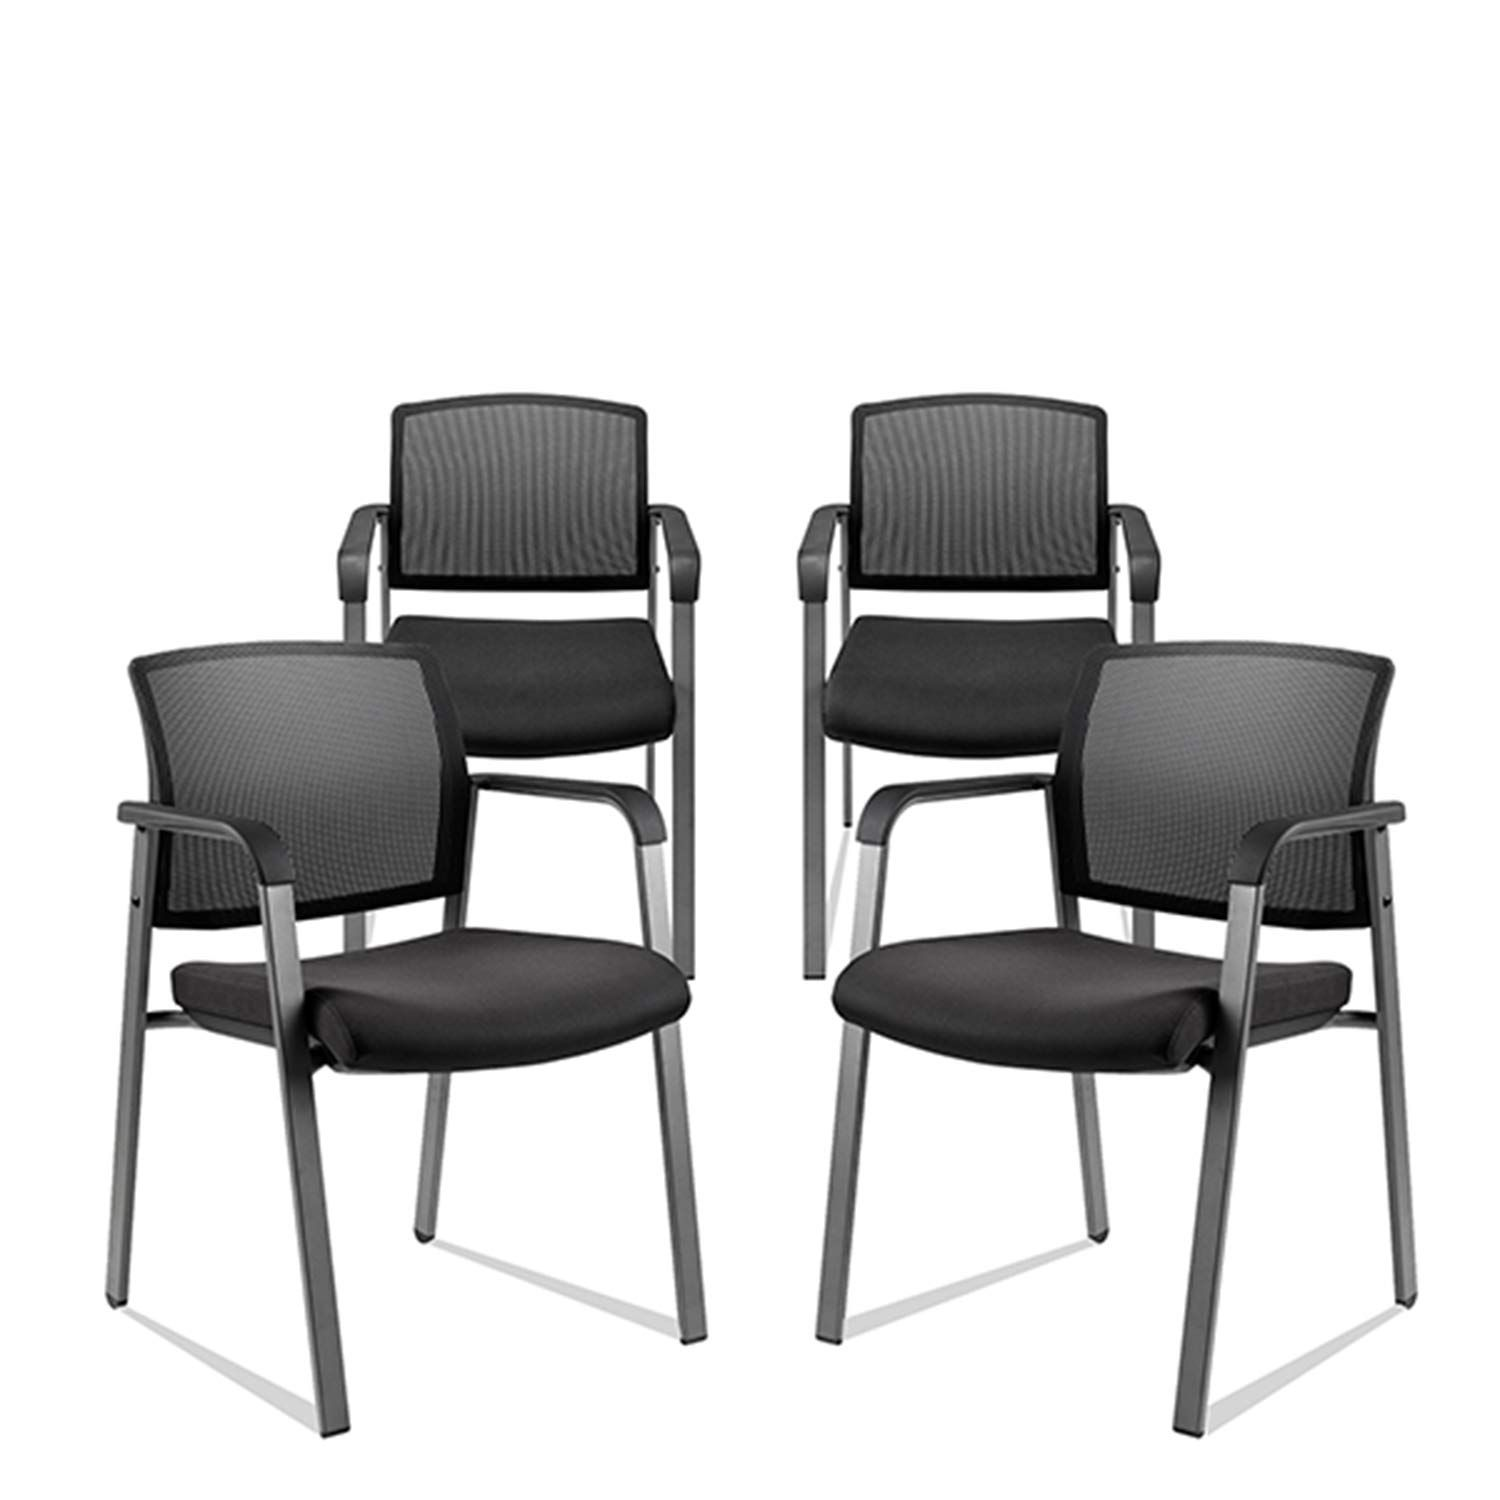 Mesh Back Stacking Arm Chairs With Upholstered Fabric Seat And